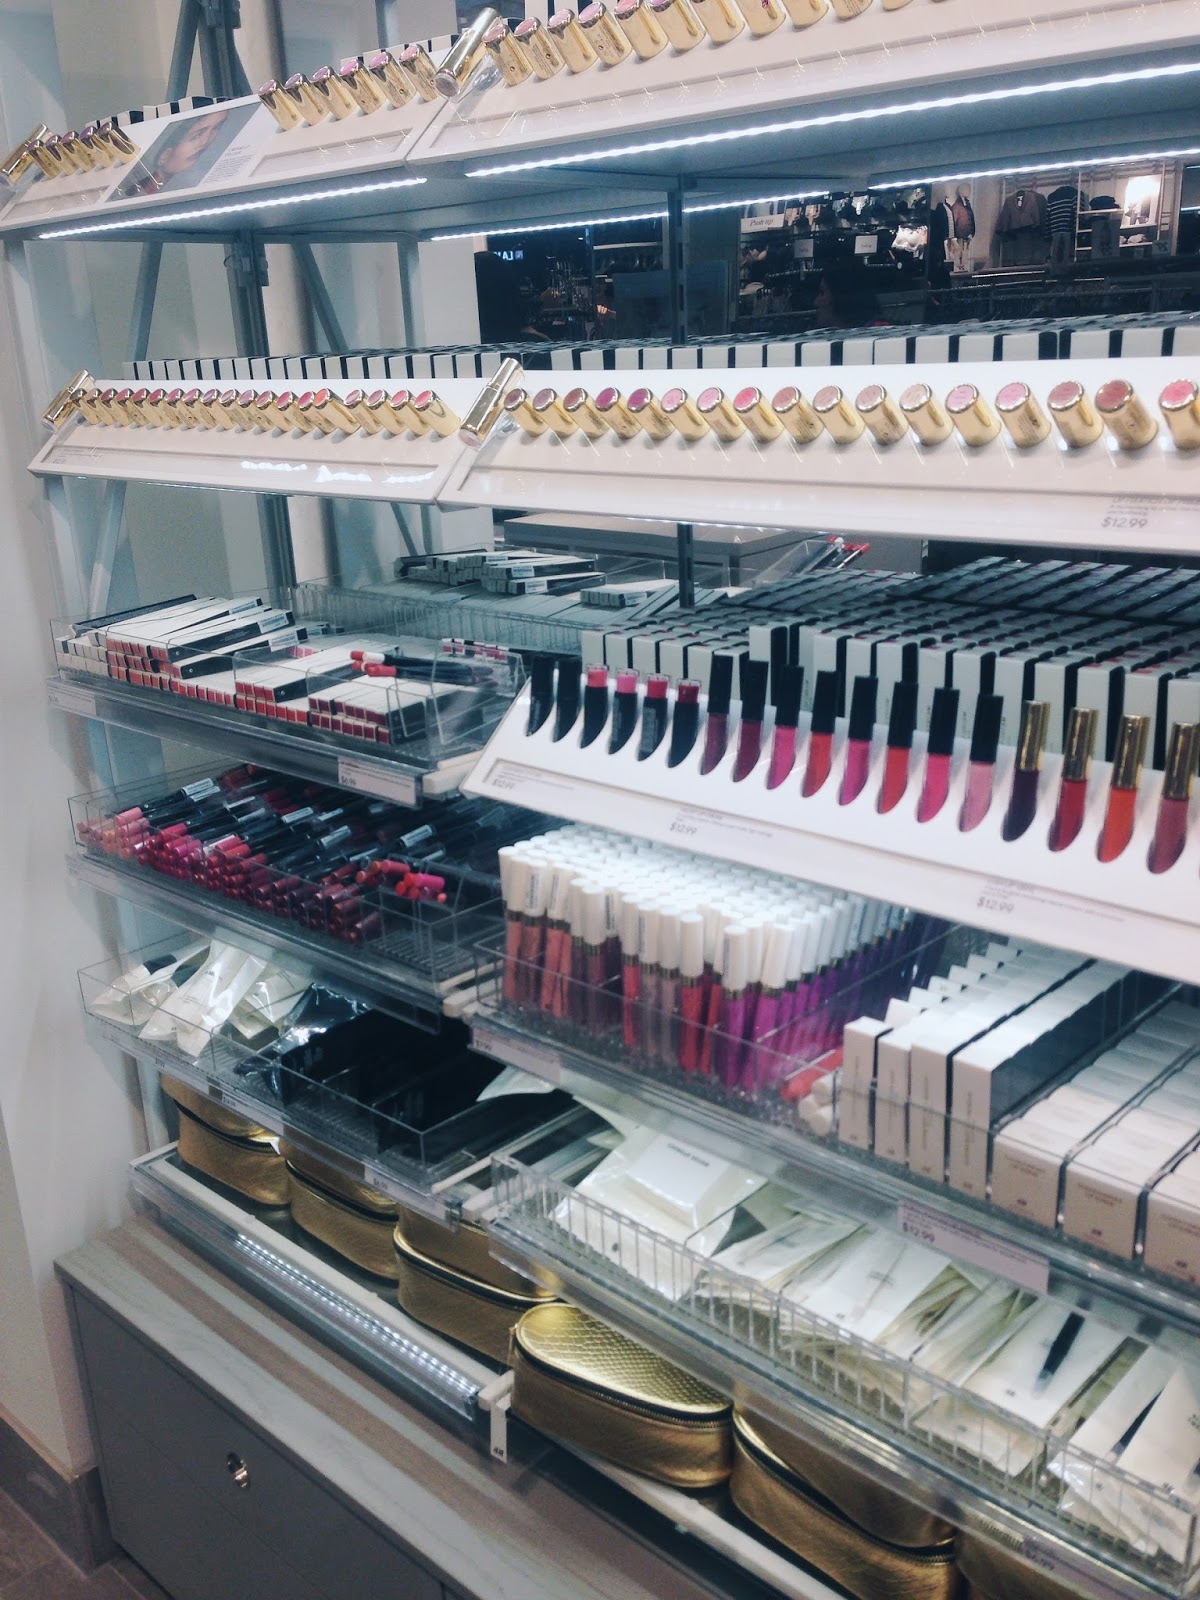 Discover Ongles Queen Nails store @ Montreal Eaton Centre Get a pedicure & manicure in Montreal Find Ongles Queen Nails discounts, deals & jobs here.